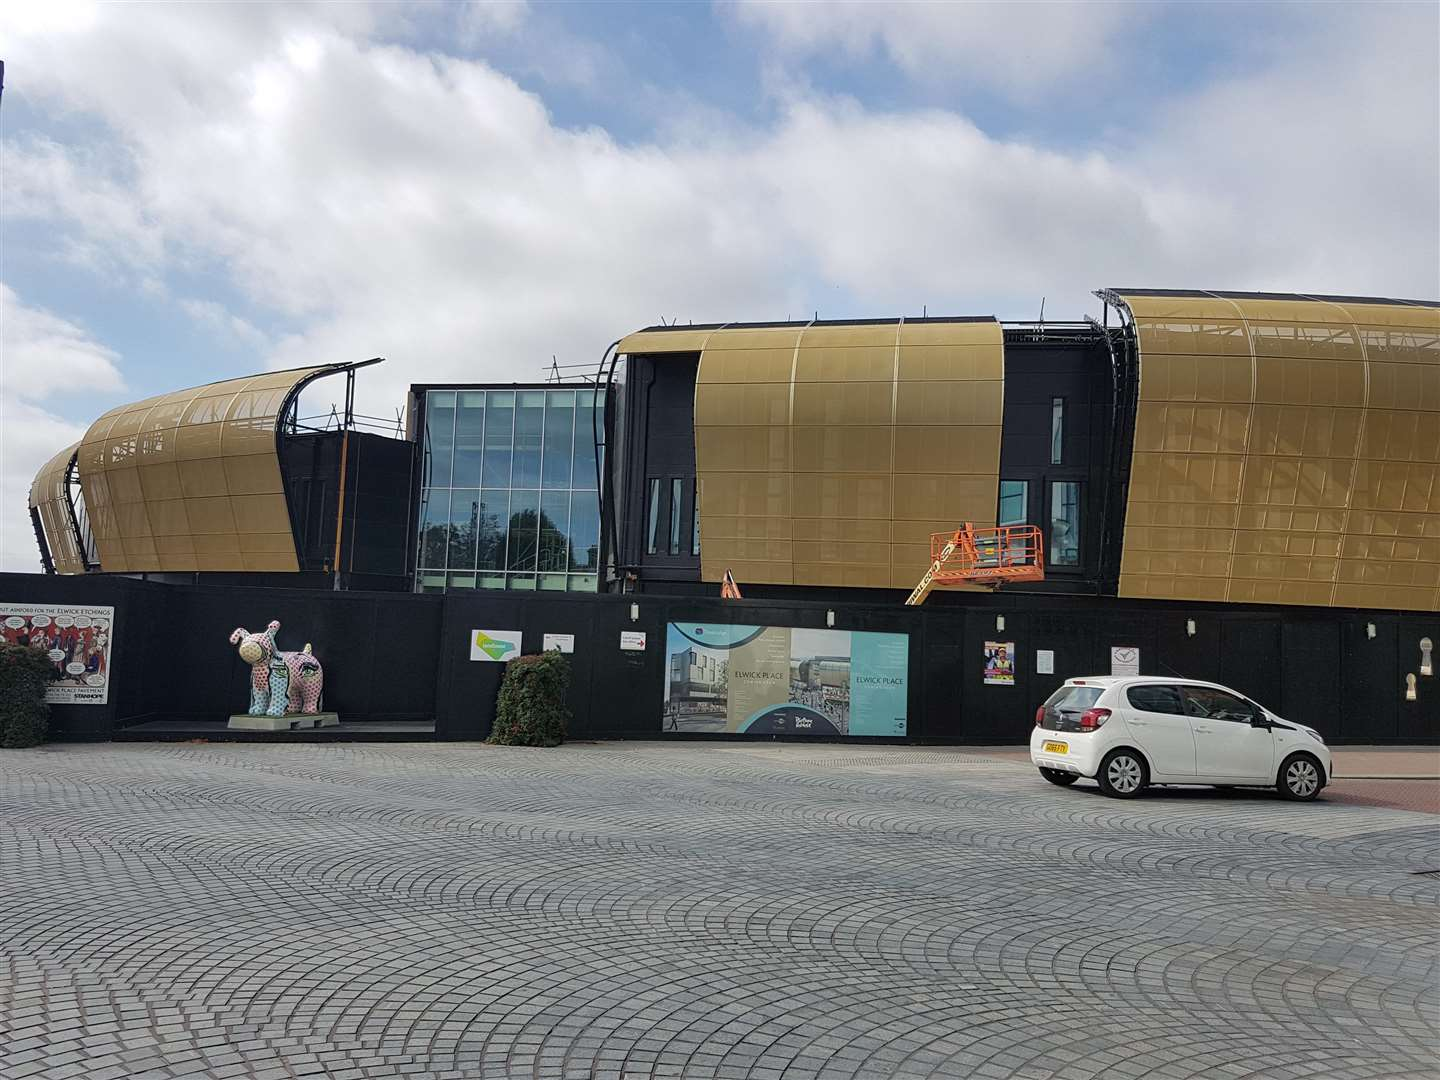 Elwick Place's golden frontage has been completely installed ahead of the December launch